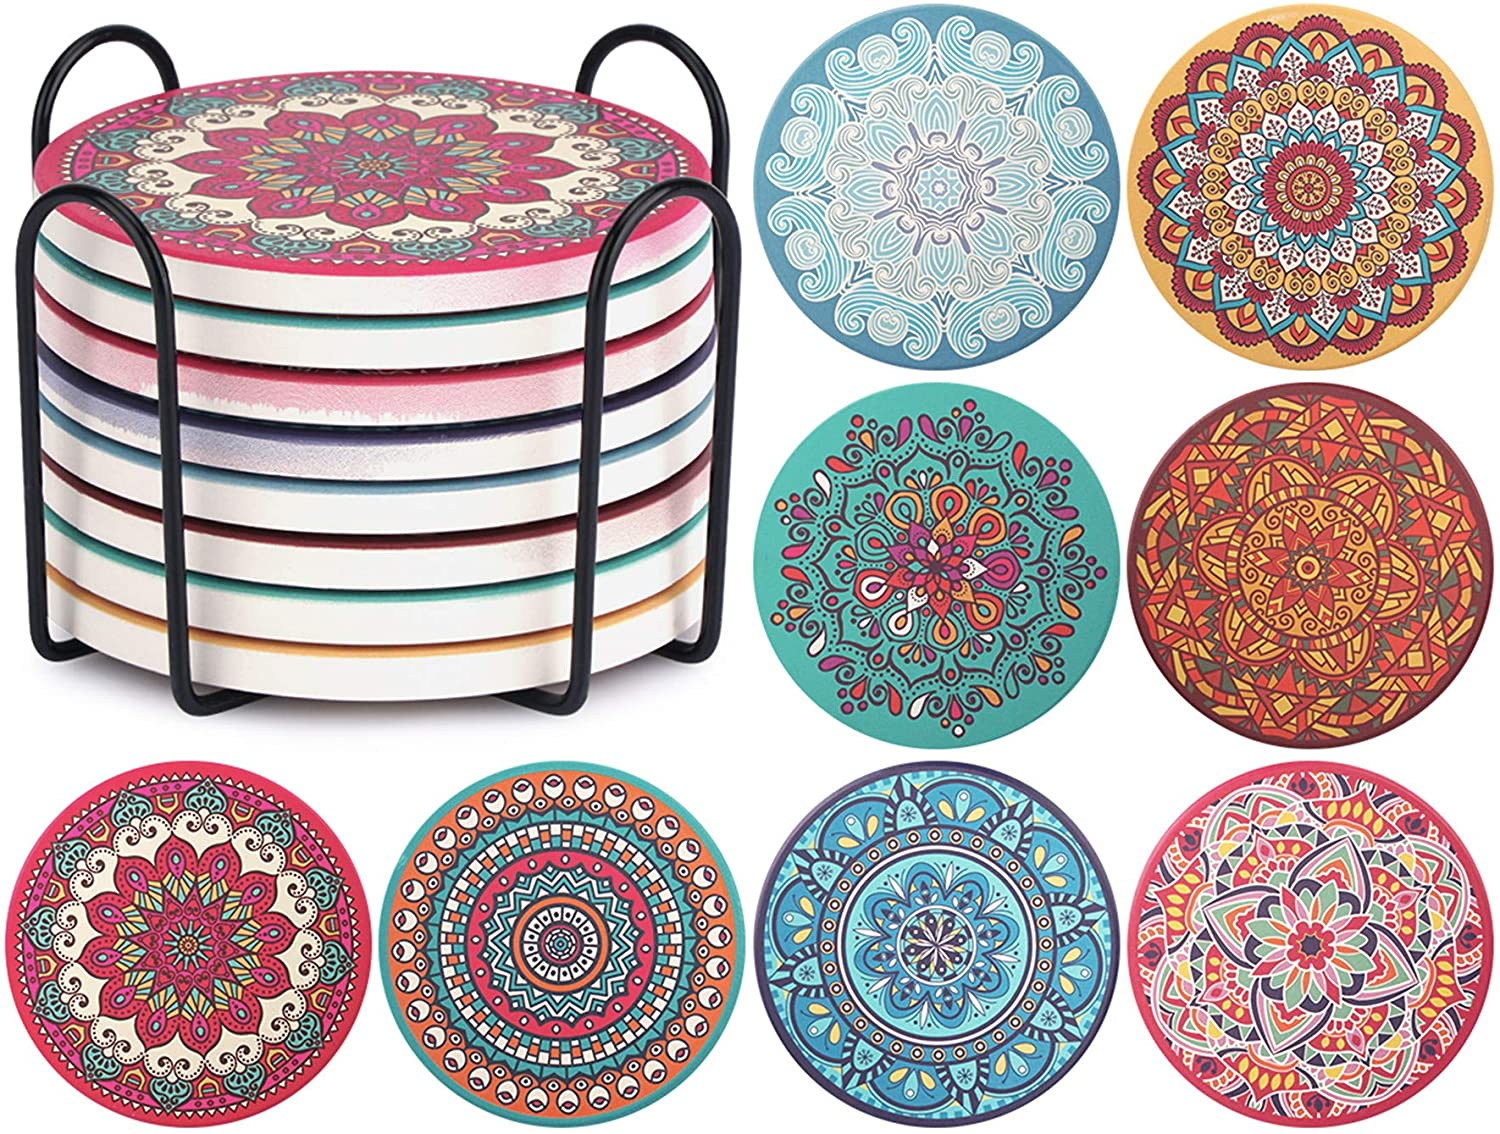 CHEFBEE Set of 8 Coaster for Drinks Absorbent Mandala Ceramic Coasters with Cork Base, Metal Holder, Stone Coasters Set for Wooden Table, Great Home and Dining Room Decor, Housewarming Gift